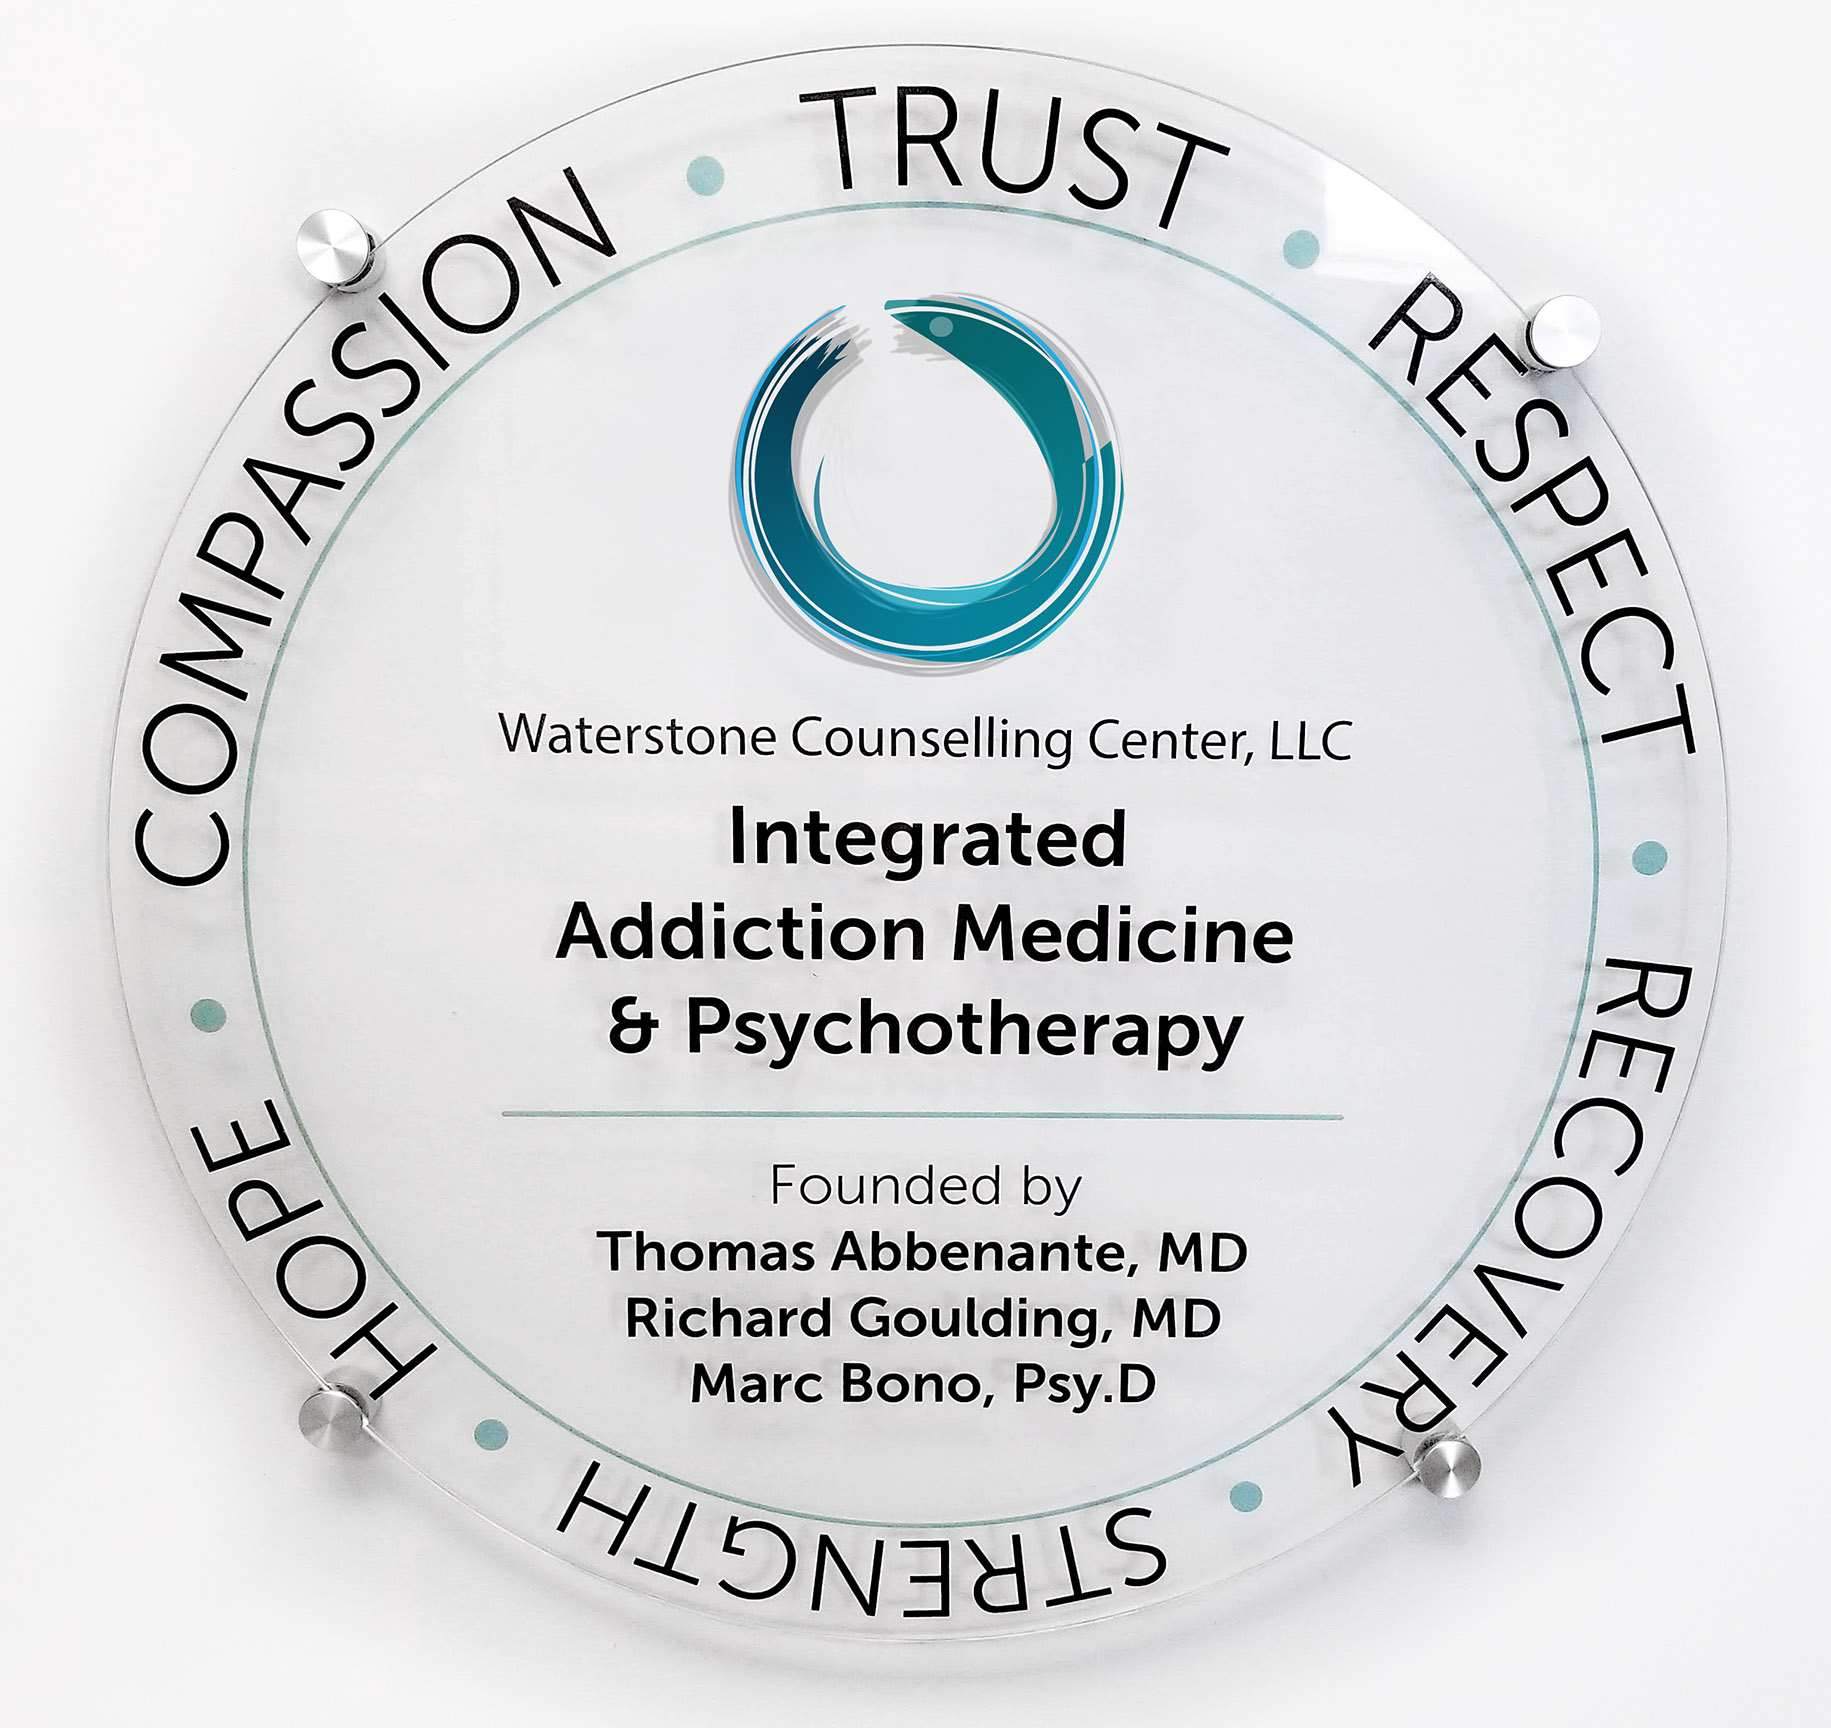 Waterstone Logo with Company description. Trust, Respect, Recovery, Strength, Hope, Compassion. 2